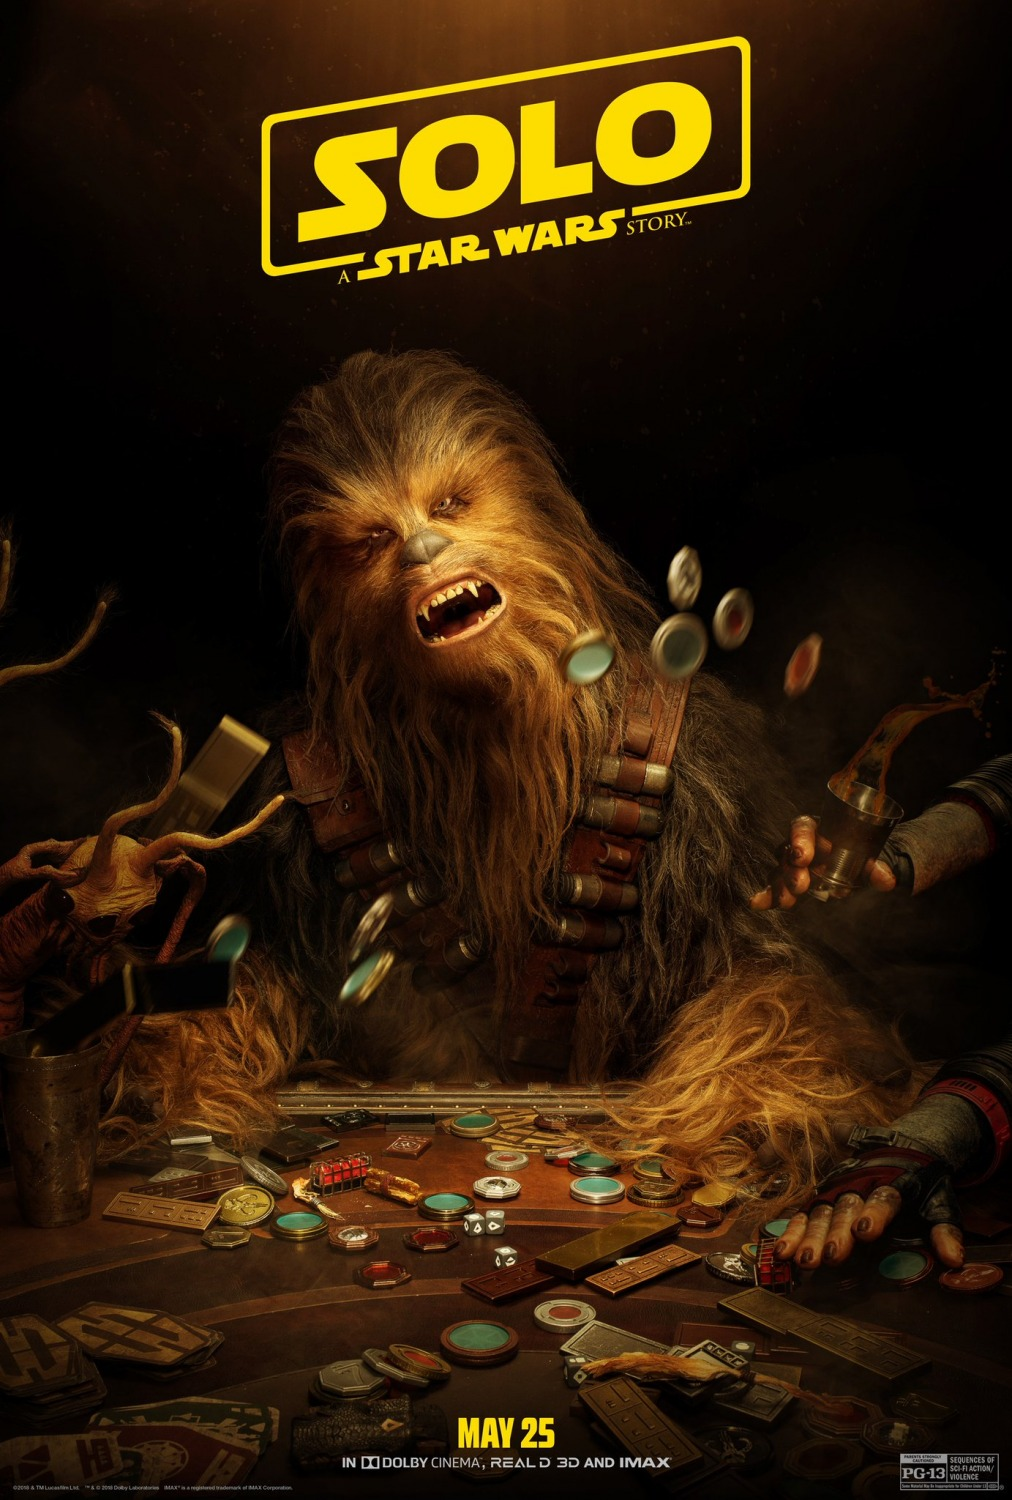 Extra Large Movie Poster Image for Solo: A Star Wars Story (#45 of 45)